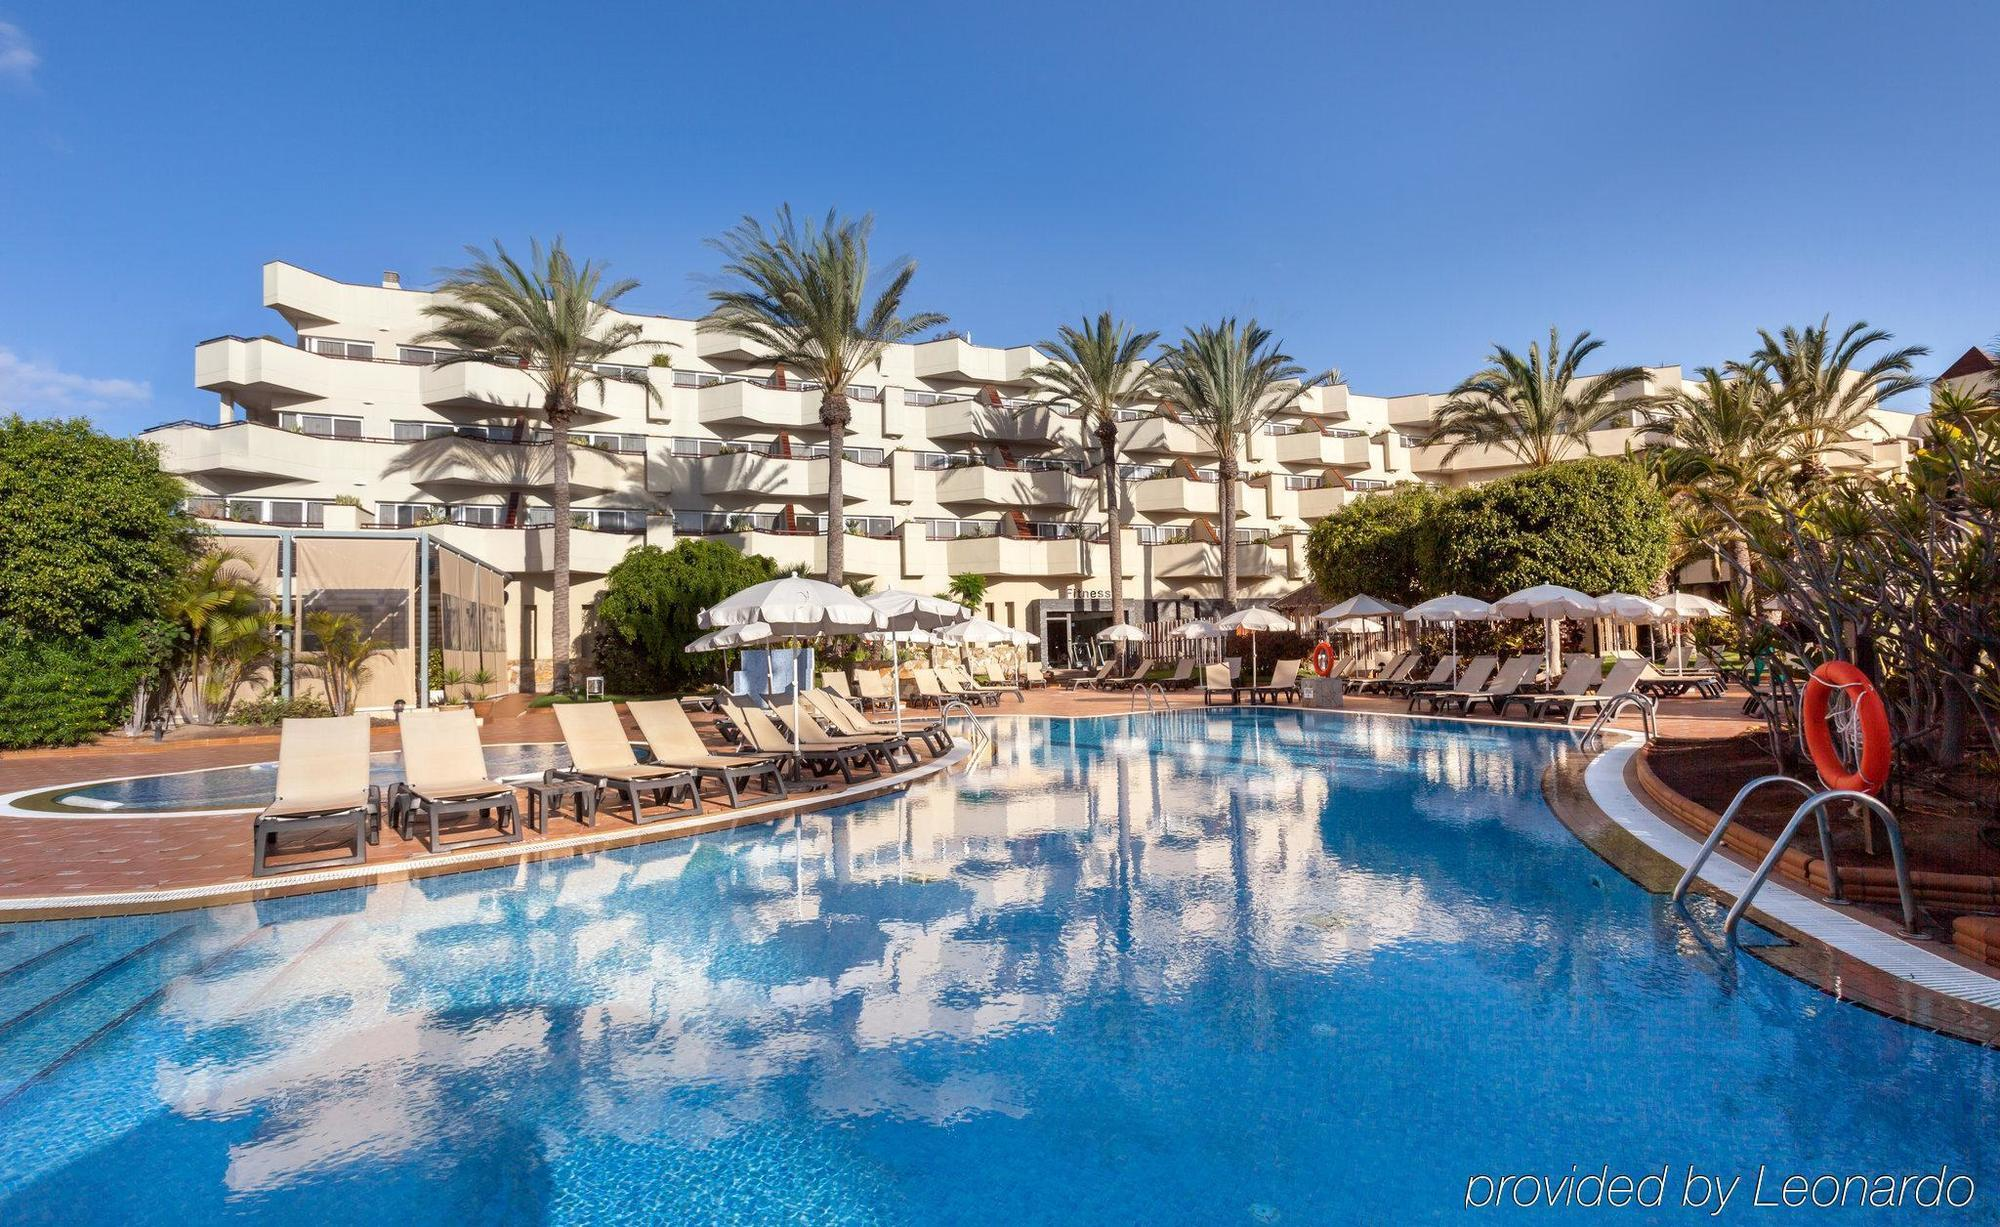 Barcelo Corralejo Bay Hotel in Corralejo. Luxurious 4 star hotel, built in modern Arabian architecture and within the residential area close to the town centre